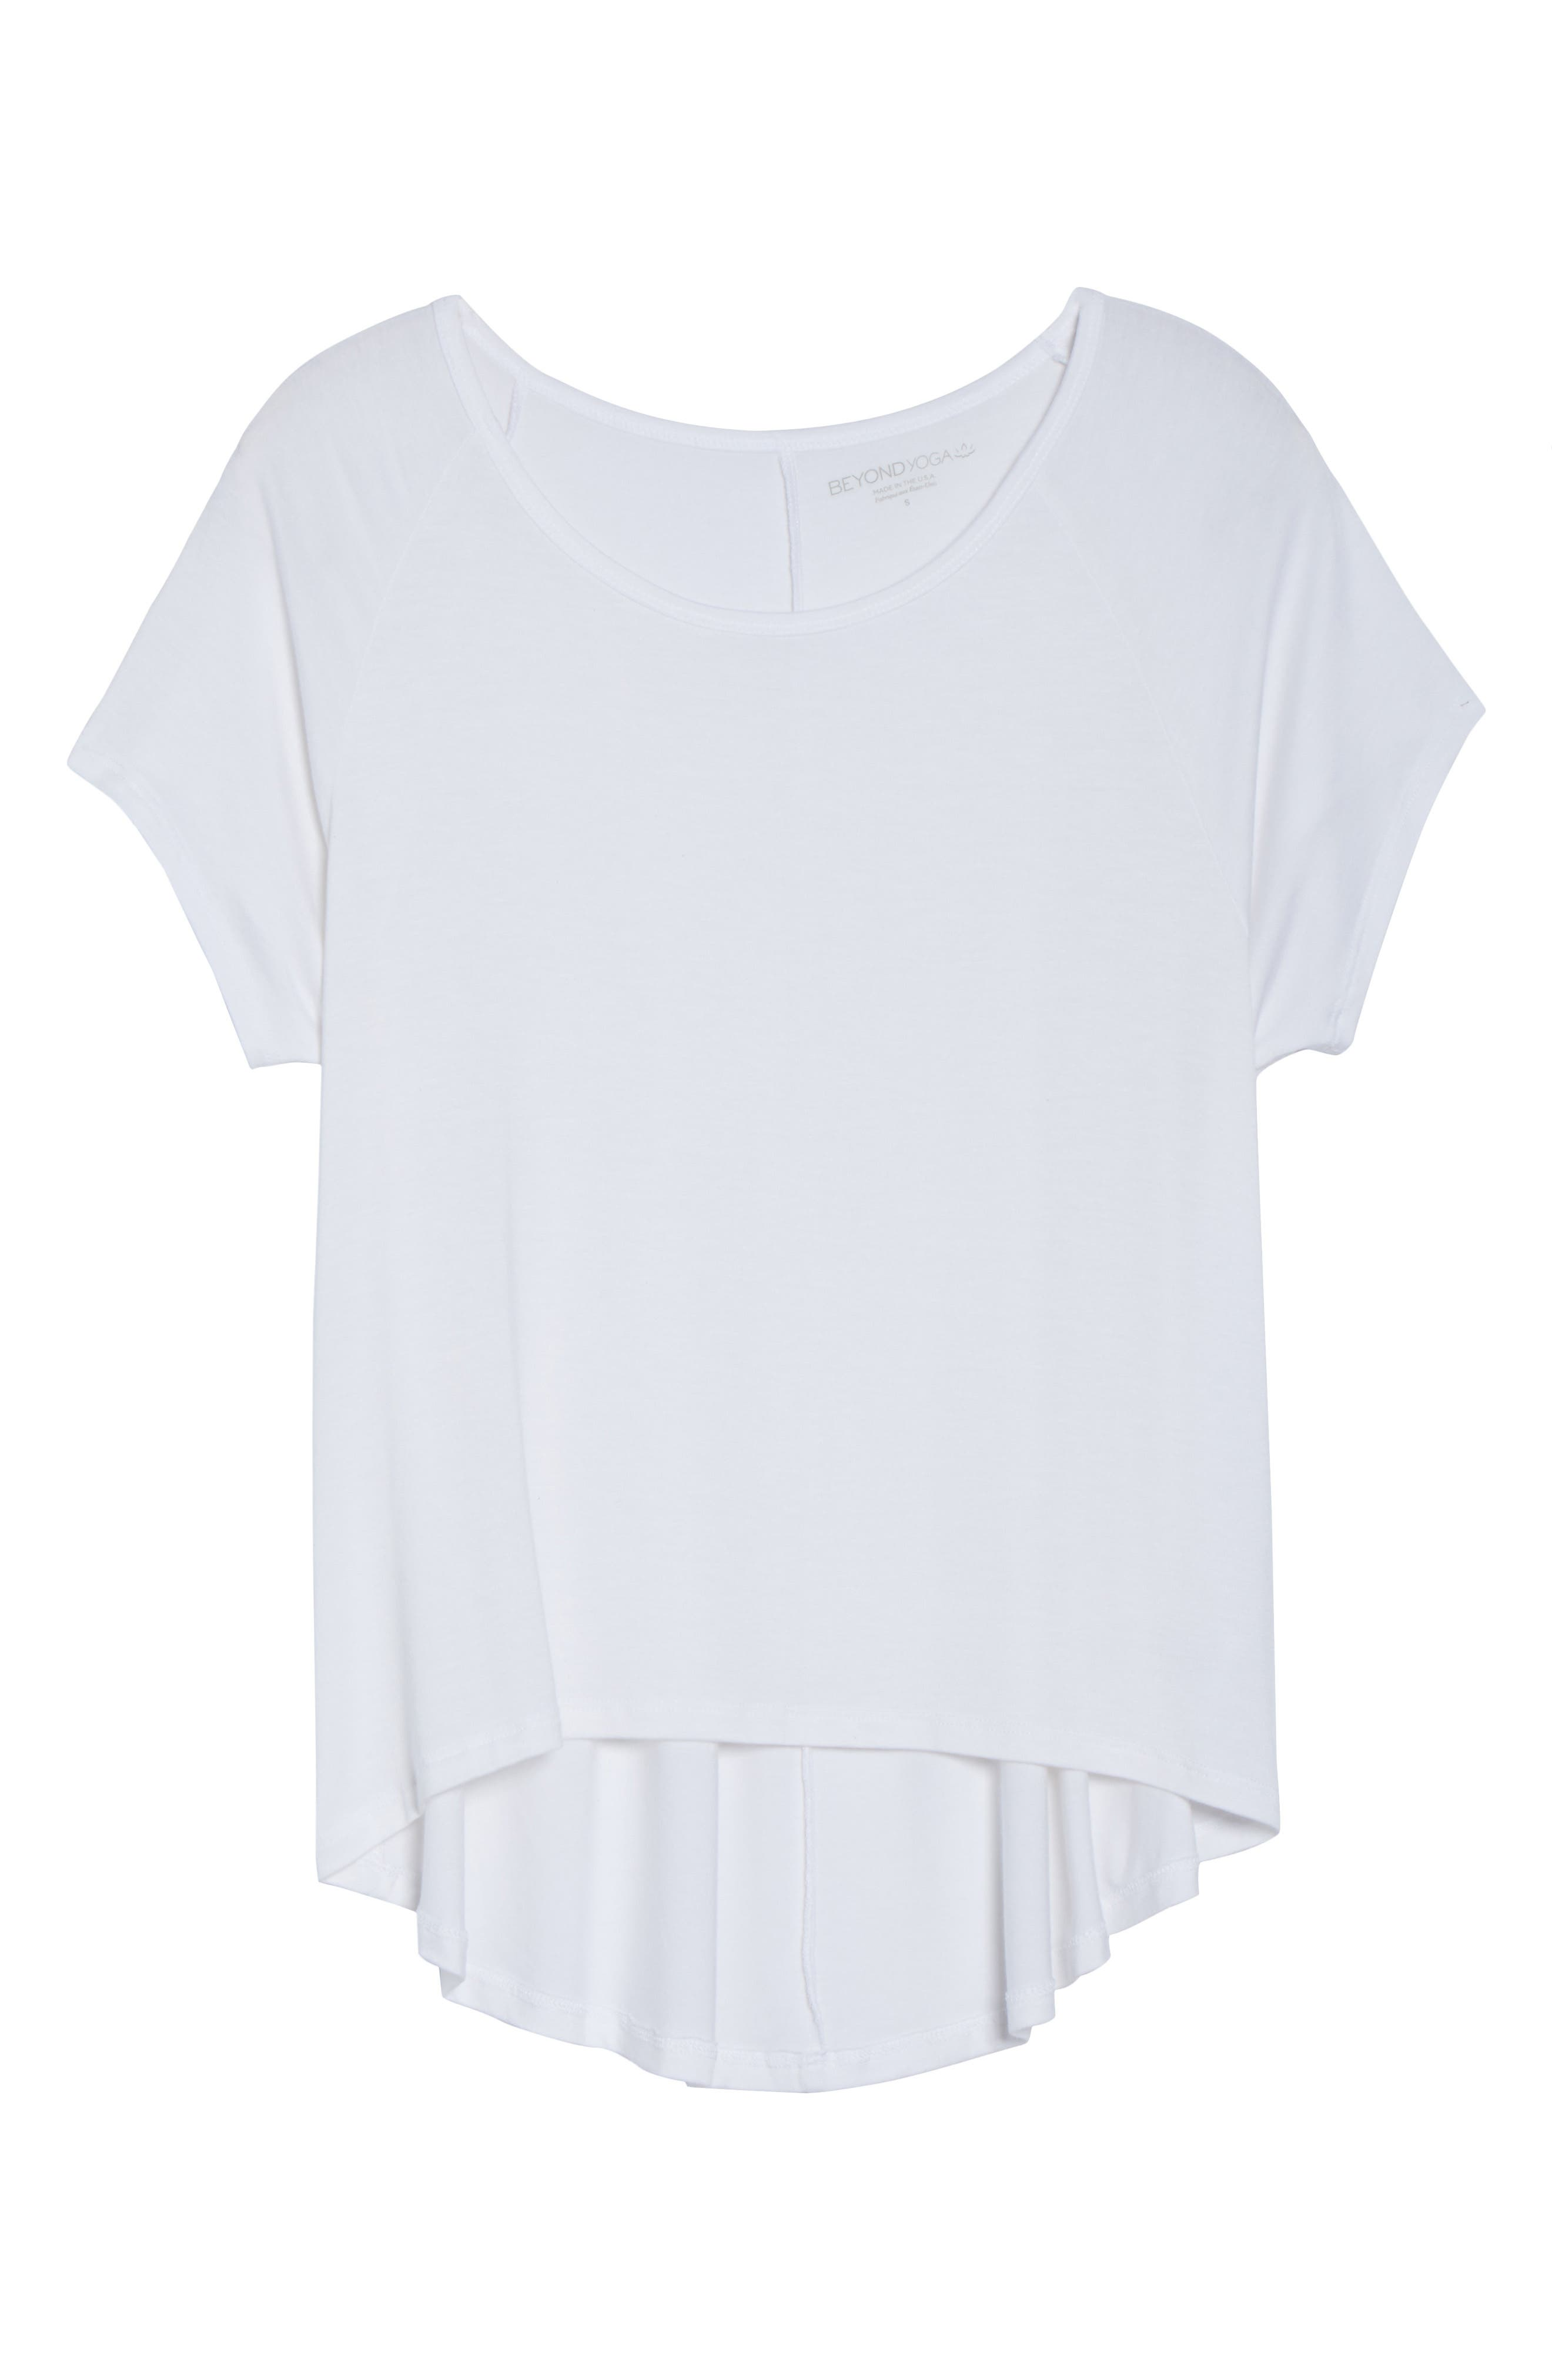 Slink Out Loud High/Low Tee,                             Alternate thumbnail 7, color,                             White